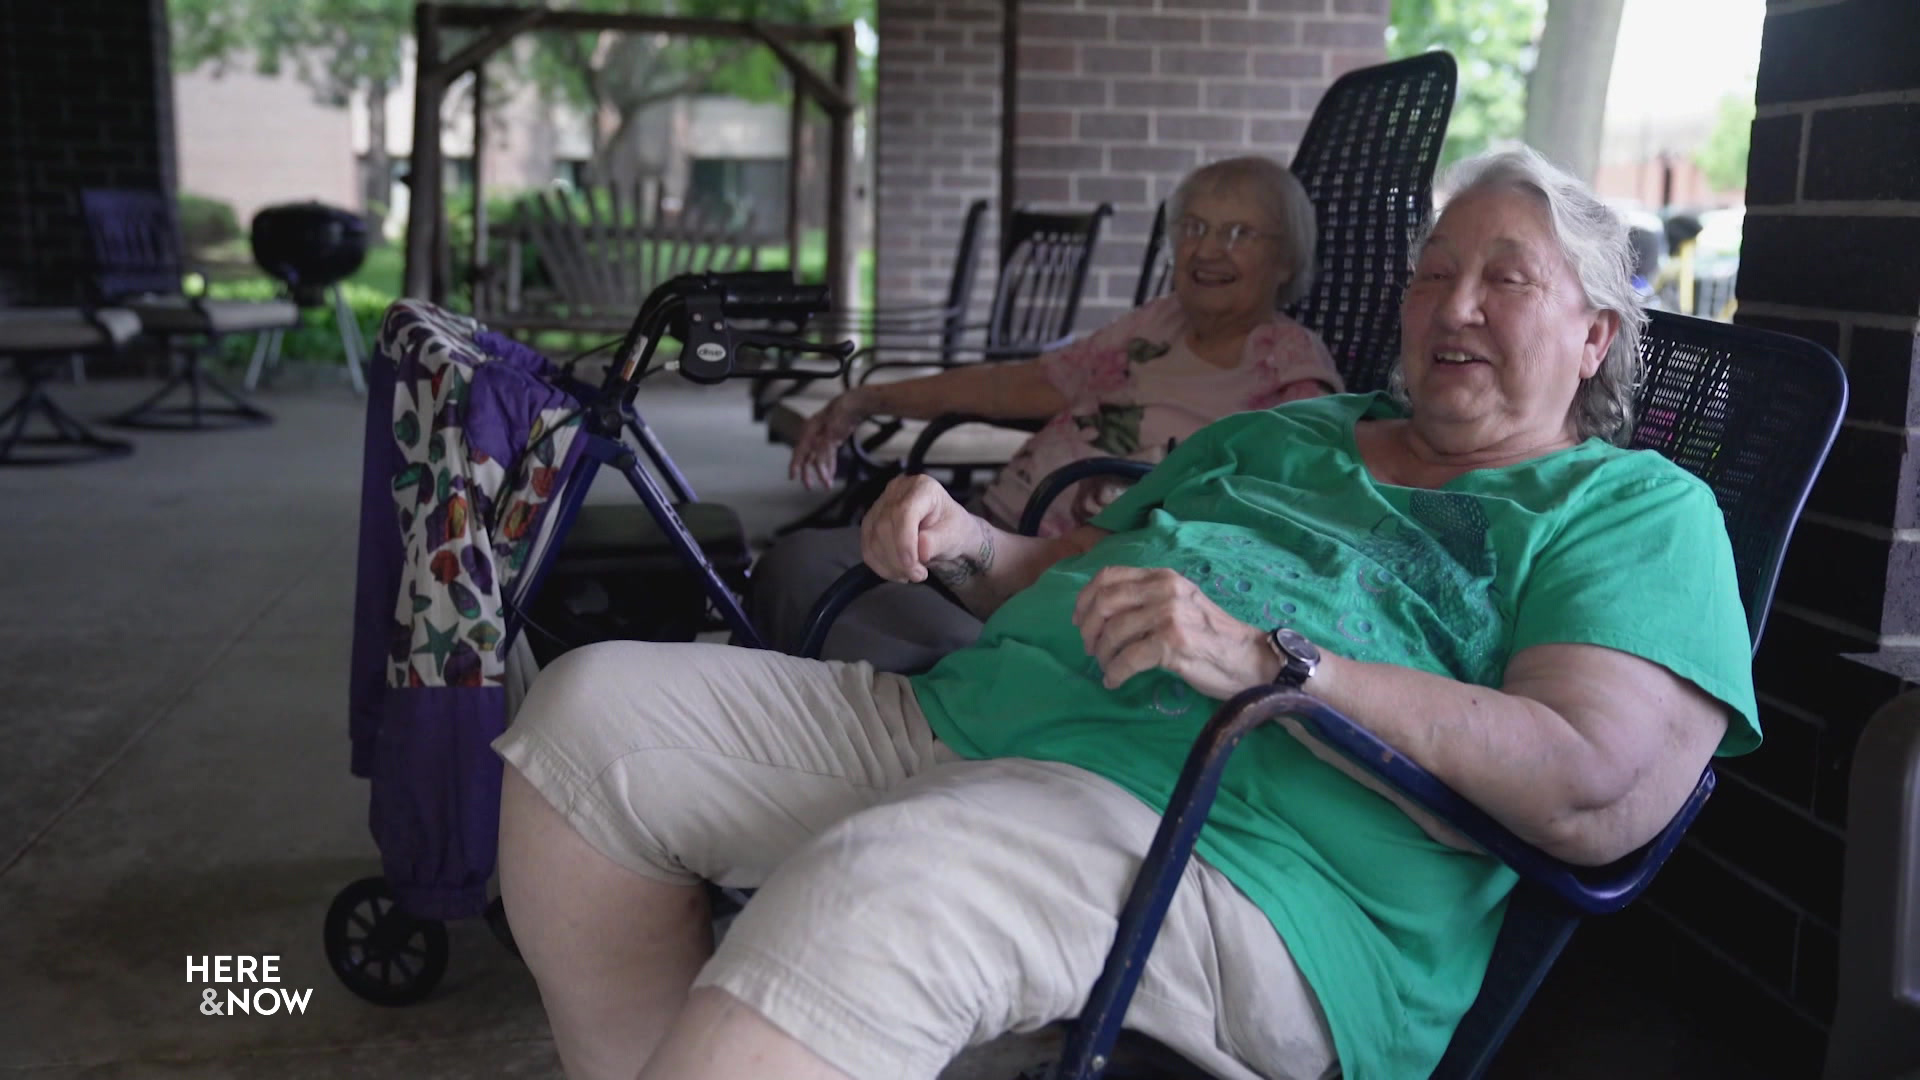 Norma Tucker and another person sit on deck chairs on a covered patio.